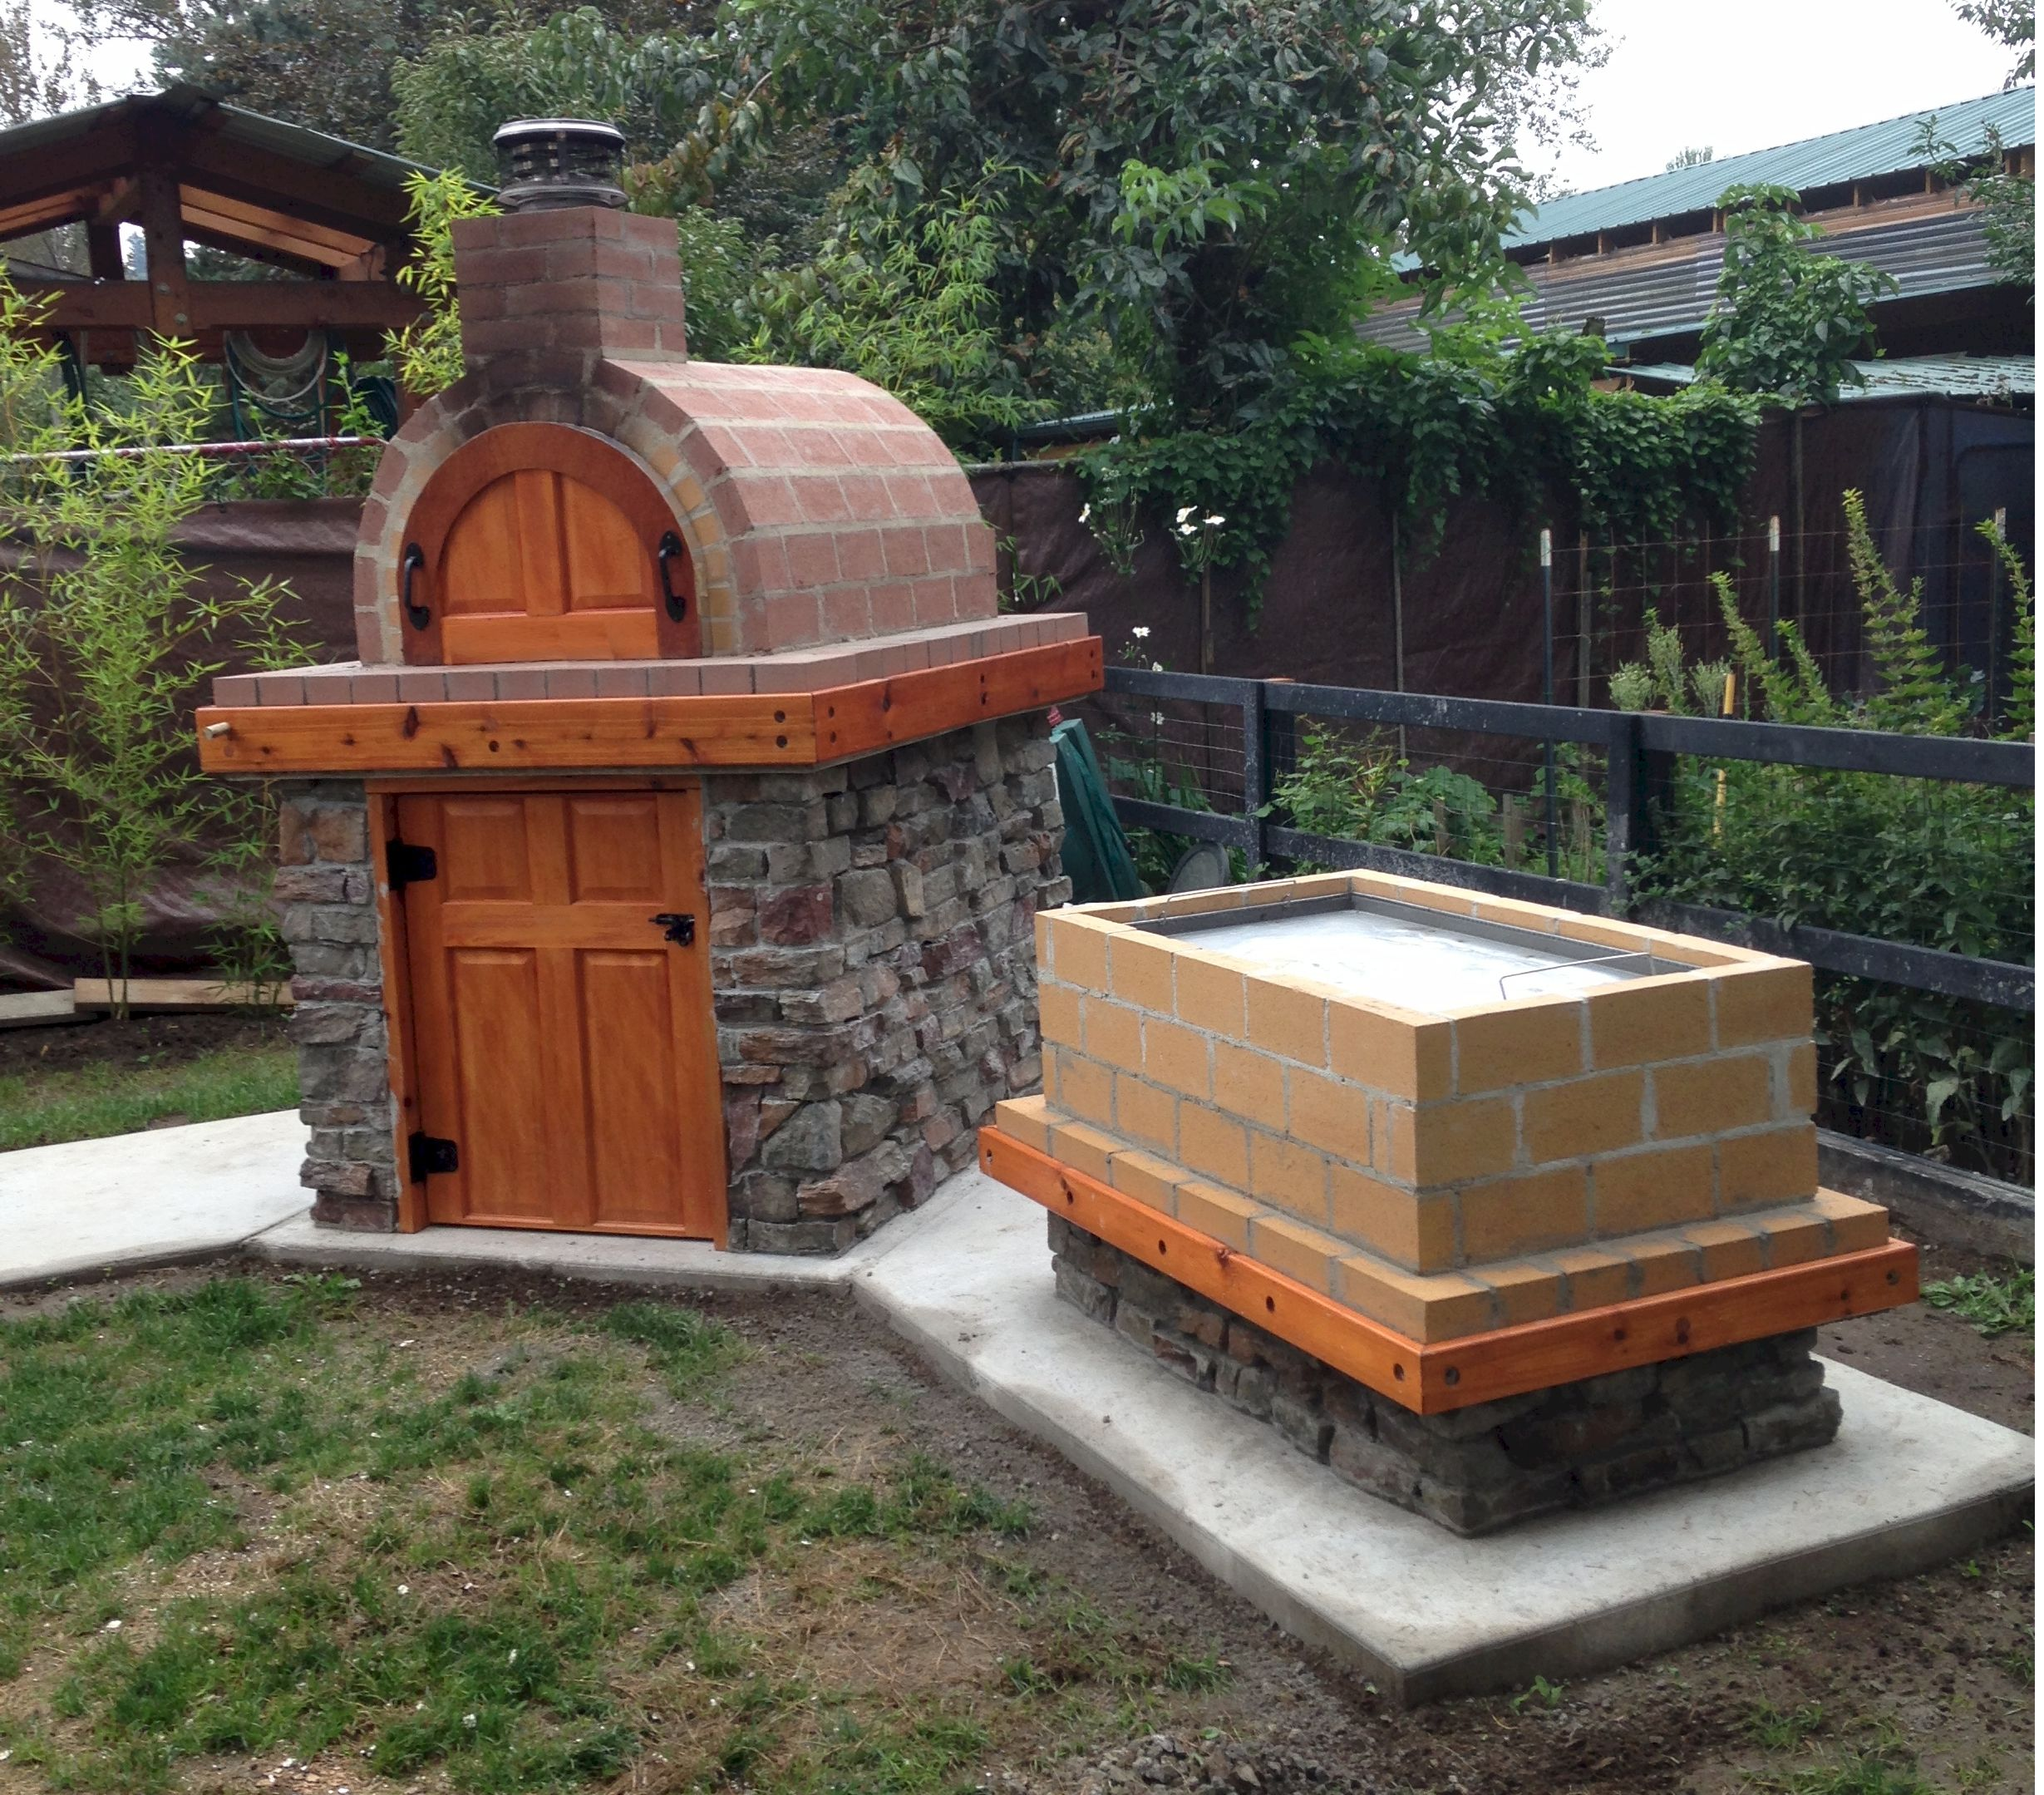 Wood fired outdoor brick pizza oven and la caja style pig roaster mattone - How to build an outdoor brick oven ...